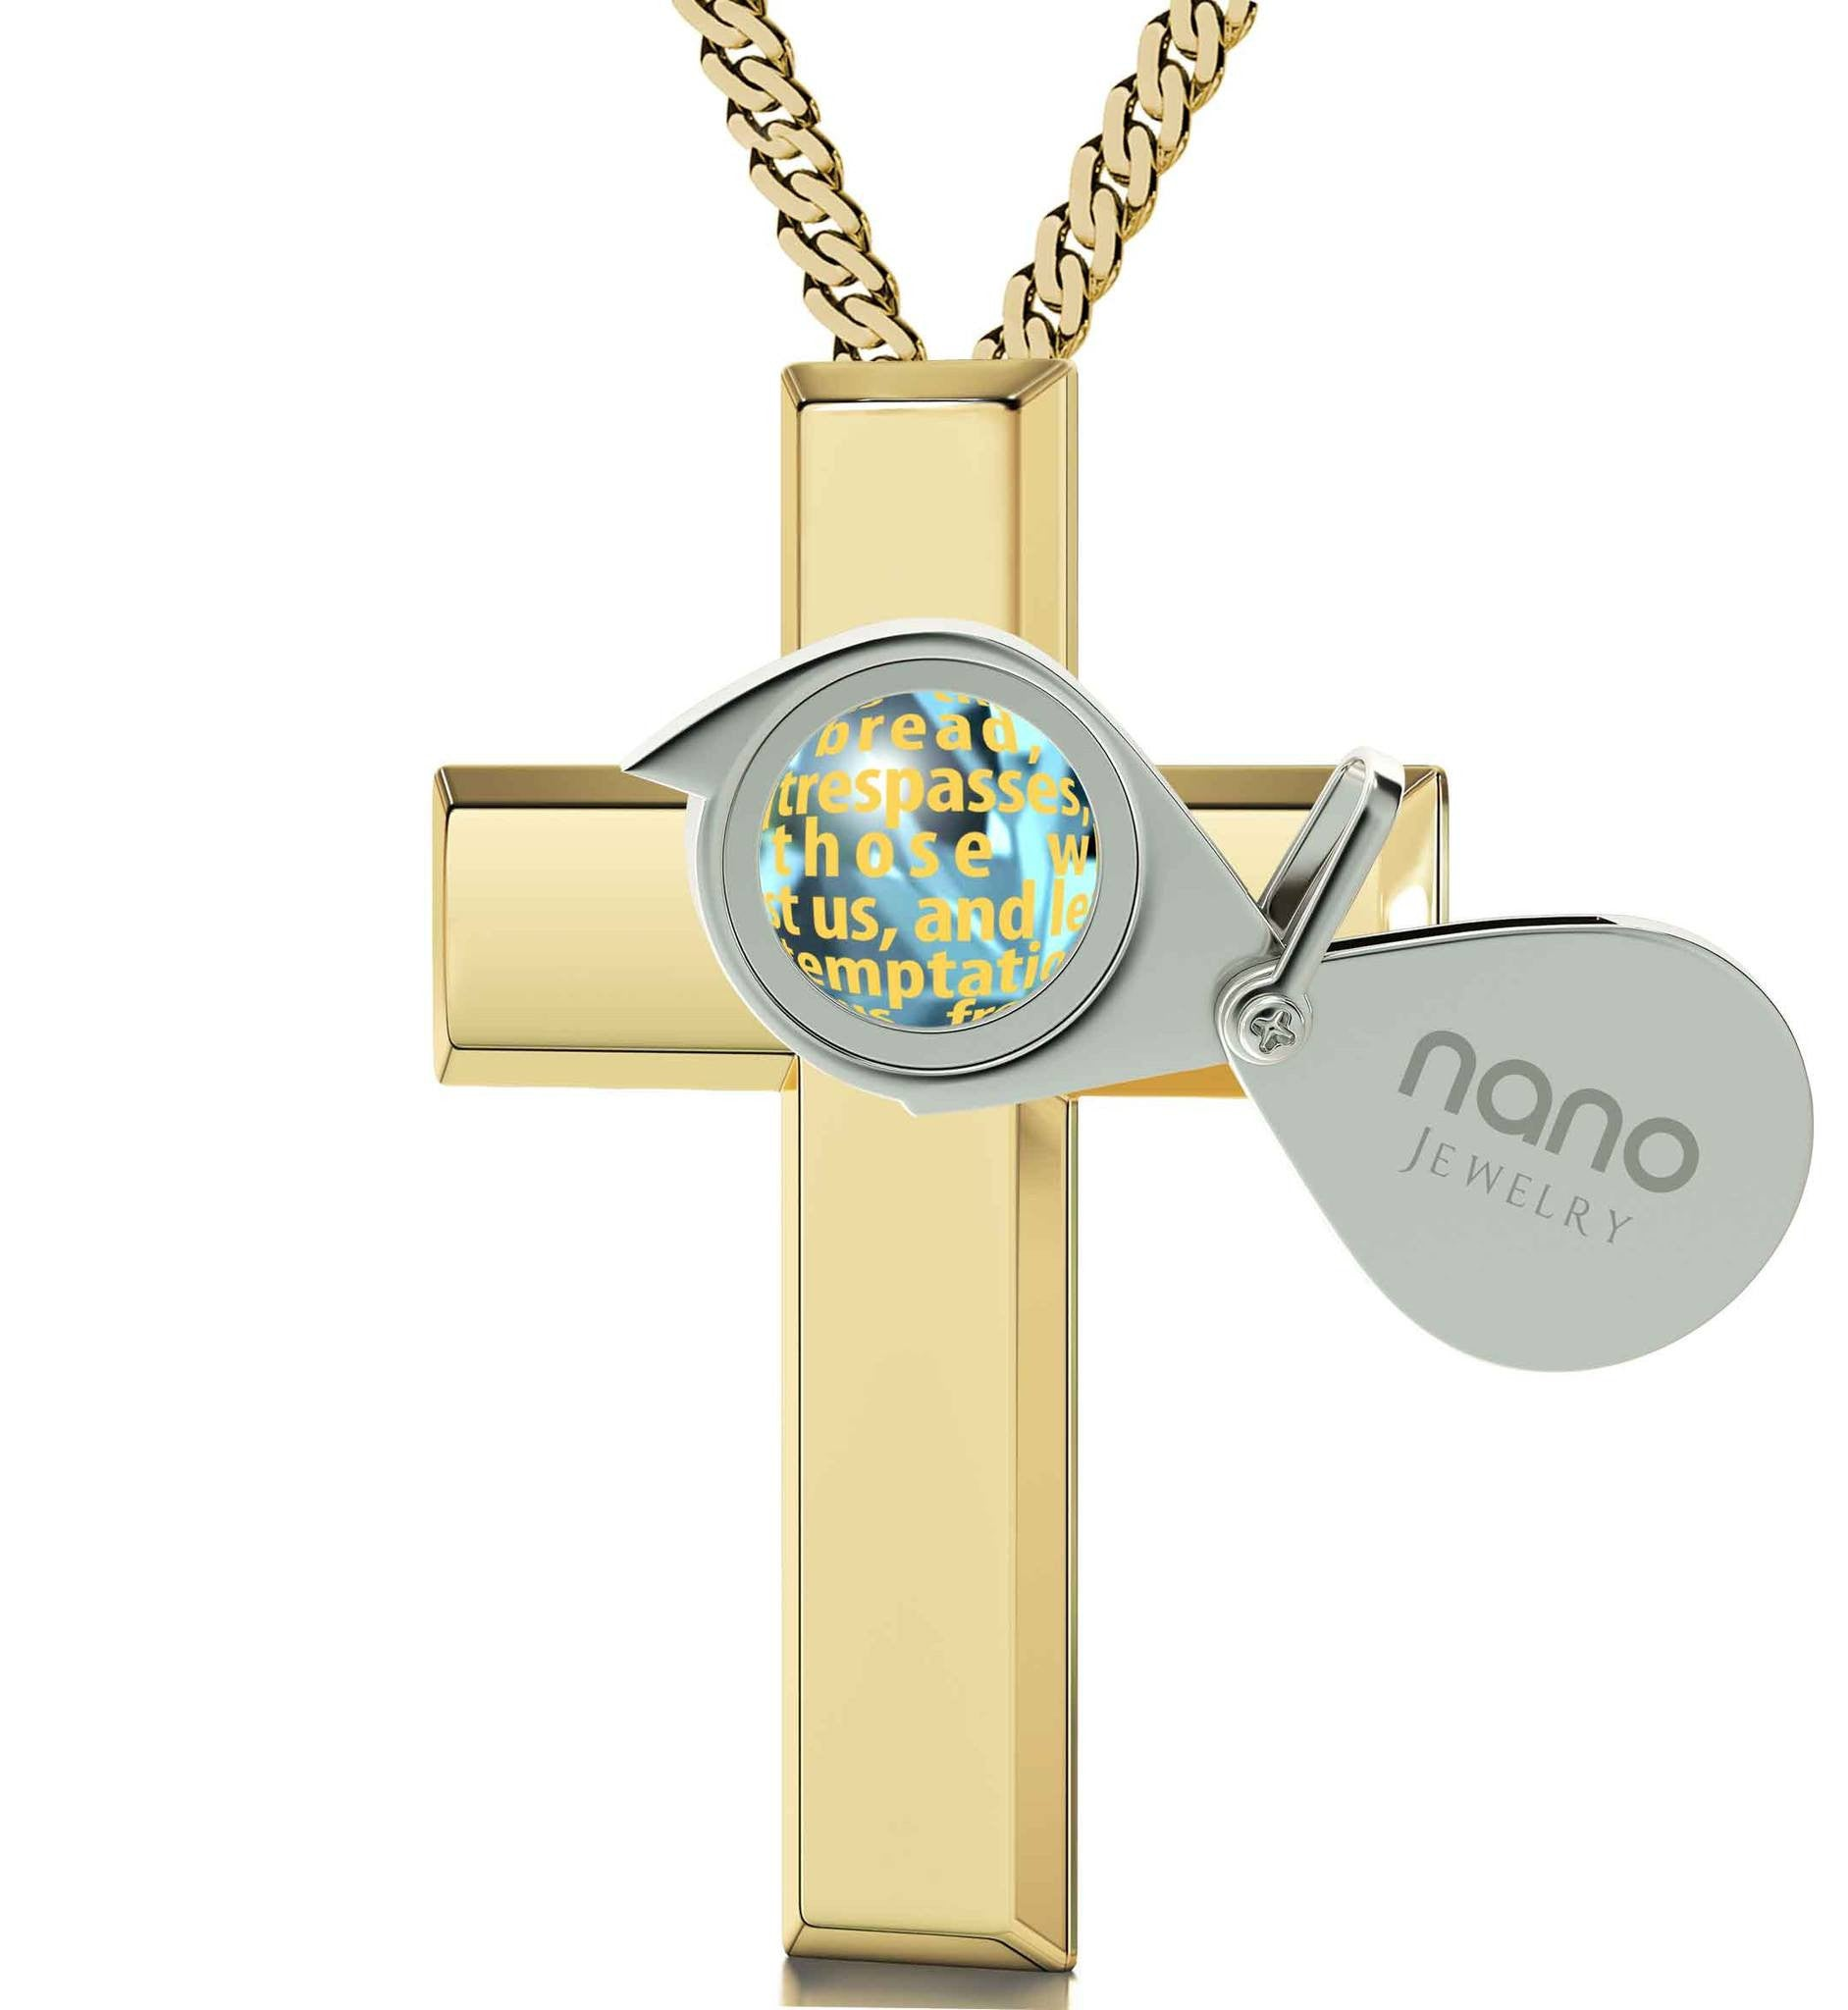 Womens gold cross necklace our father prayer buy now at nano jewelry lords prayer engraved in 24k gold cute necklaces for her christian gift items aloadofball Images